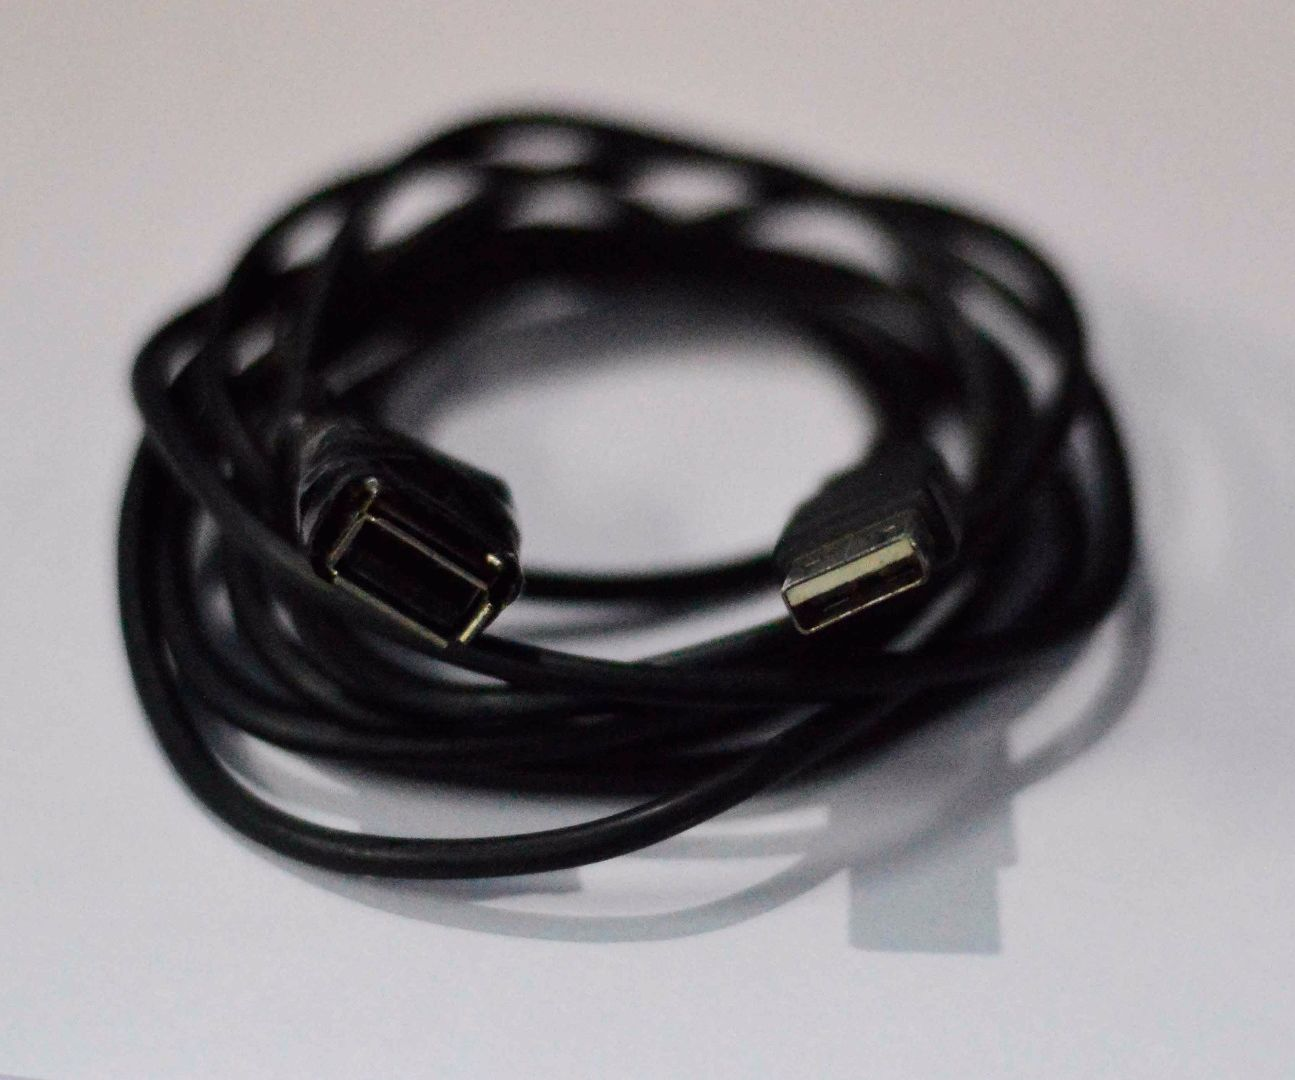 DIY USB Extension Cable